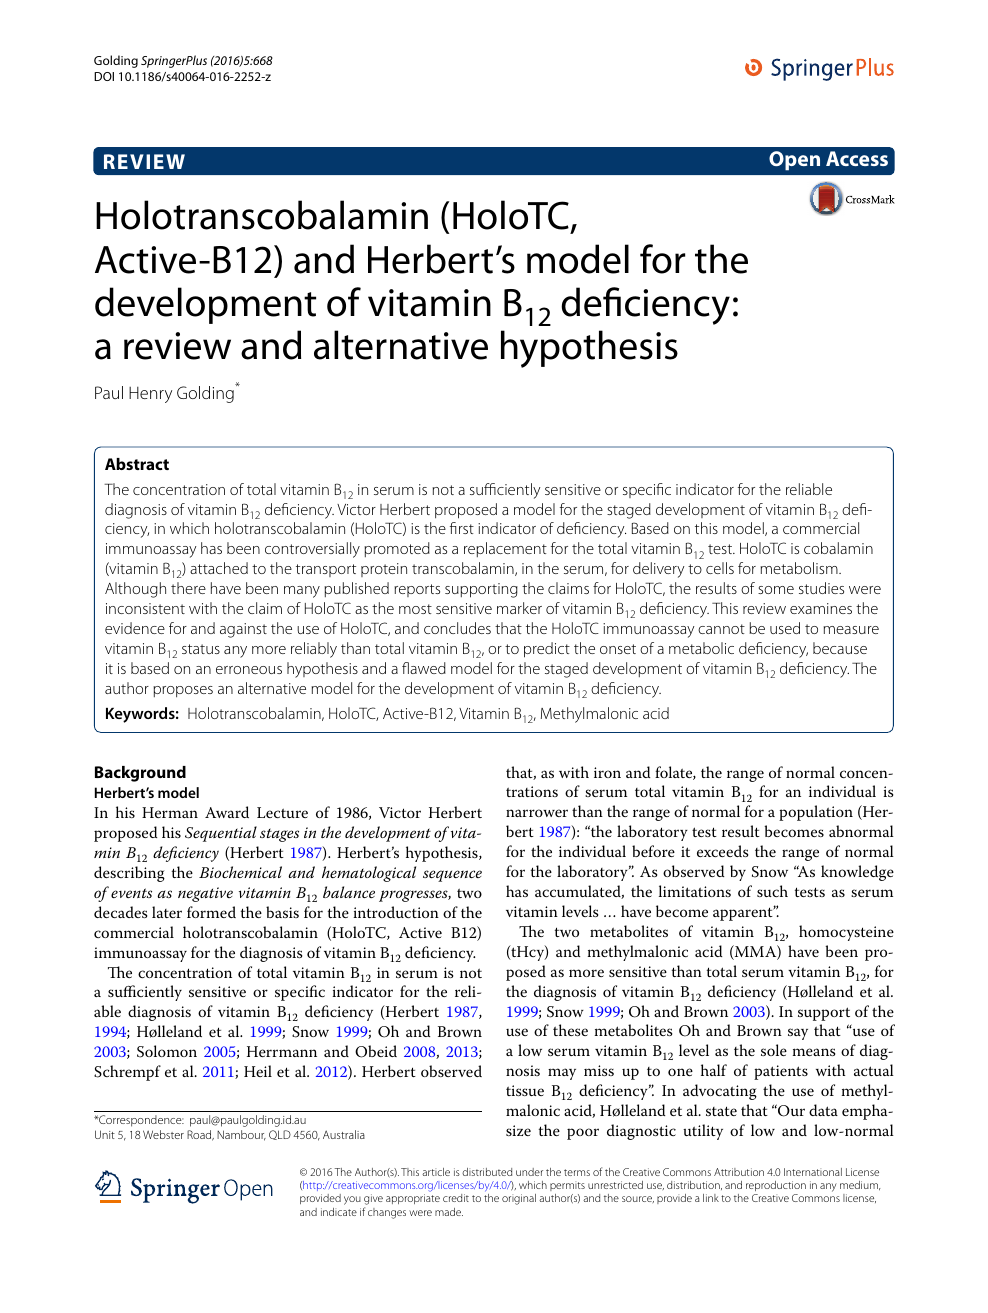 Holotranscobalamin (HoloTC, Active-B12) and Herbert's model for the